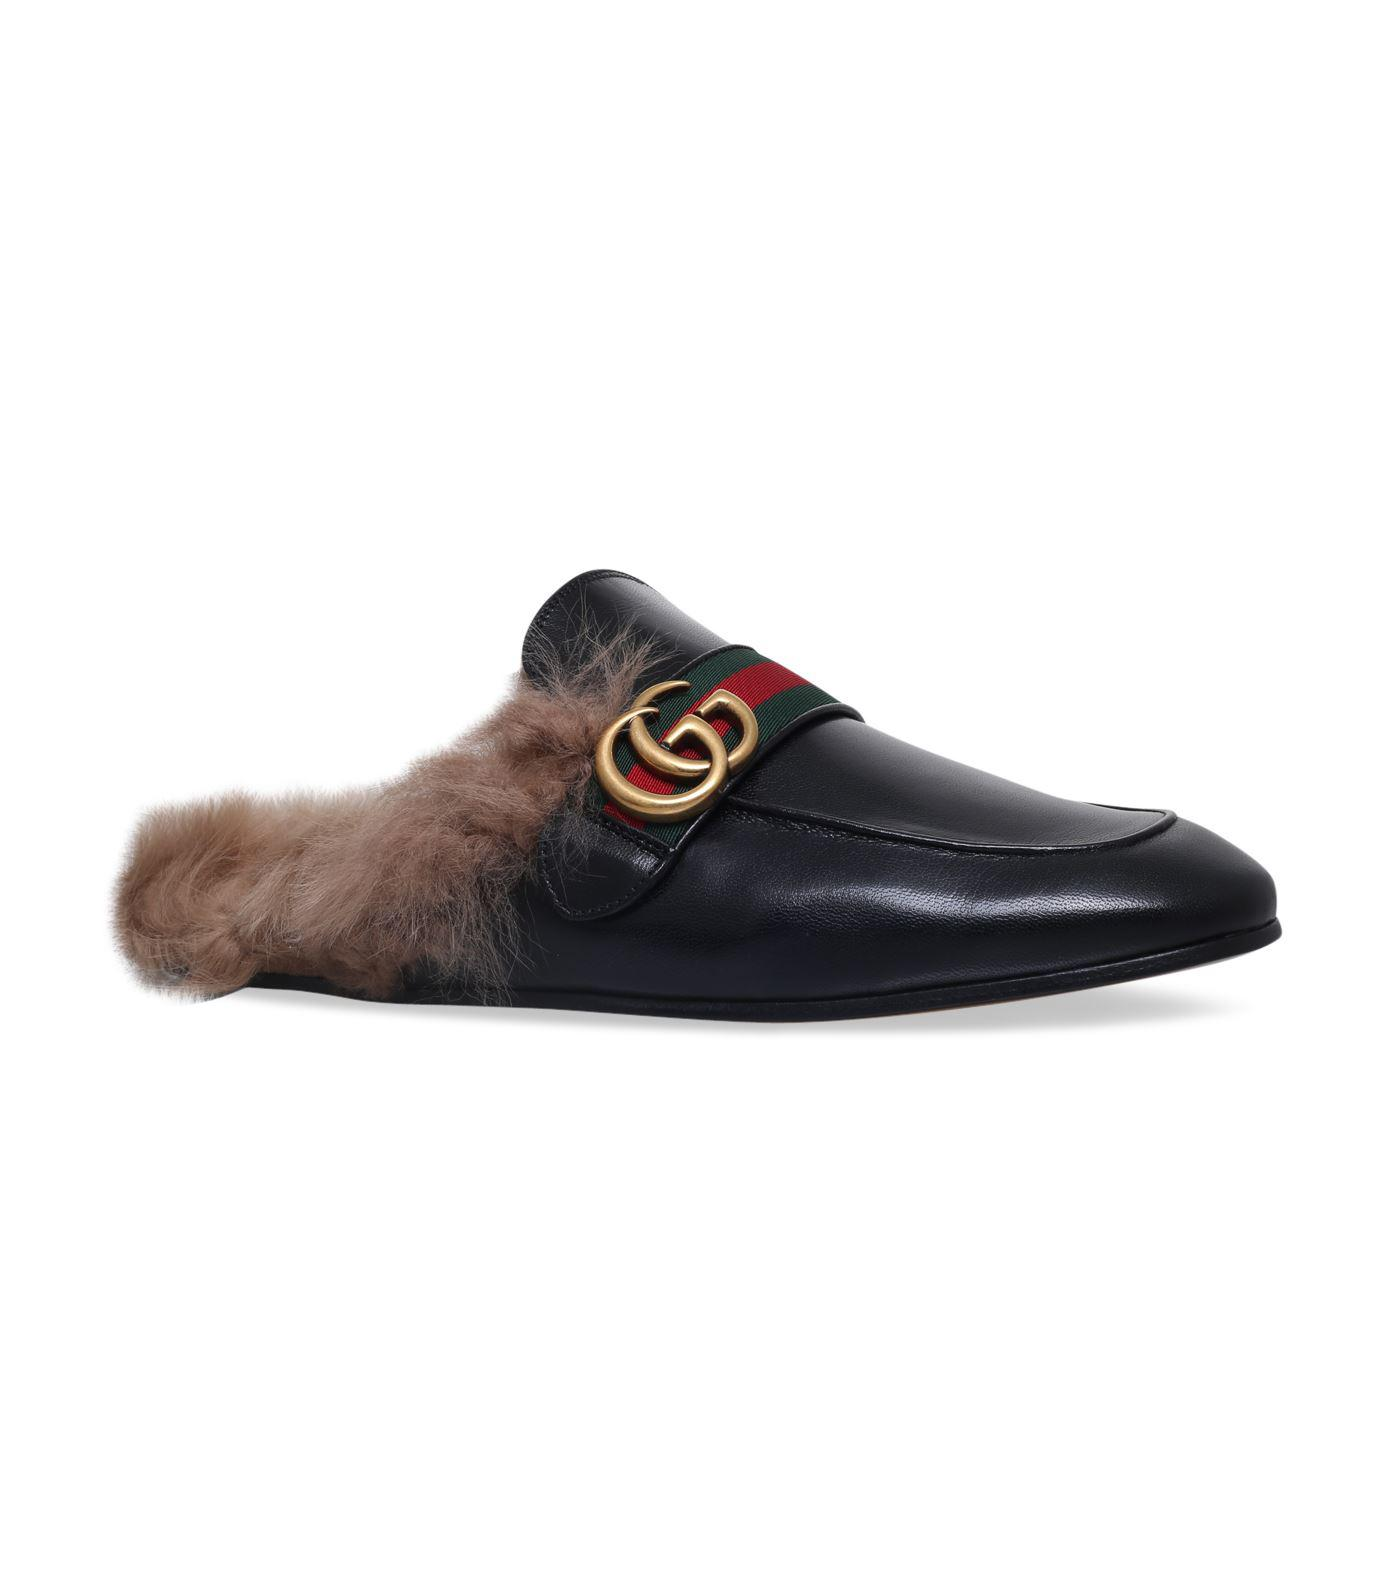 110050efcfc Lyst - Gucci Leather Princetown Gg Slippers in Black for Men - Save 17%